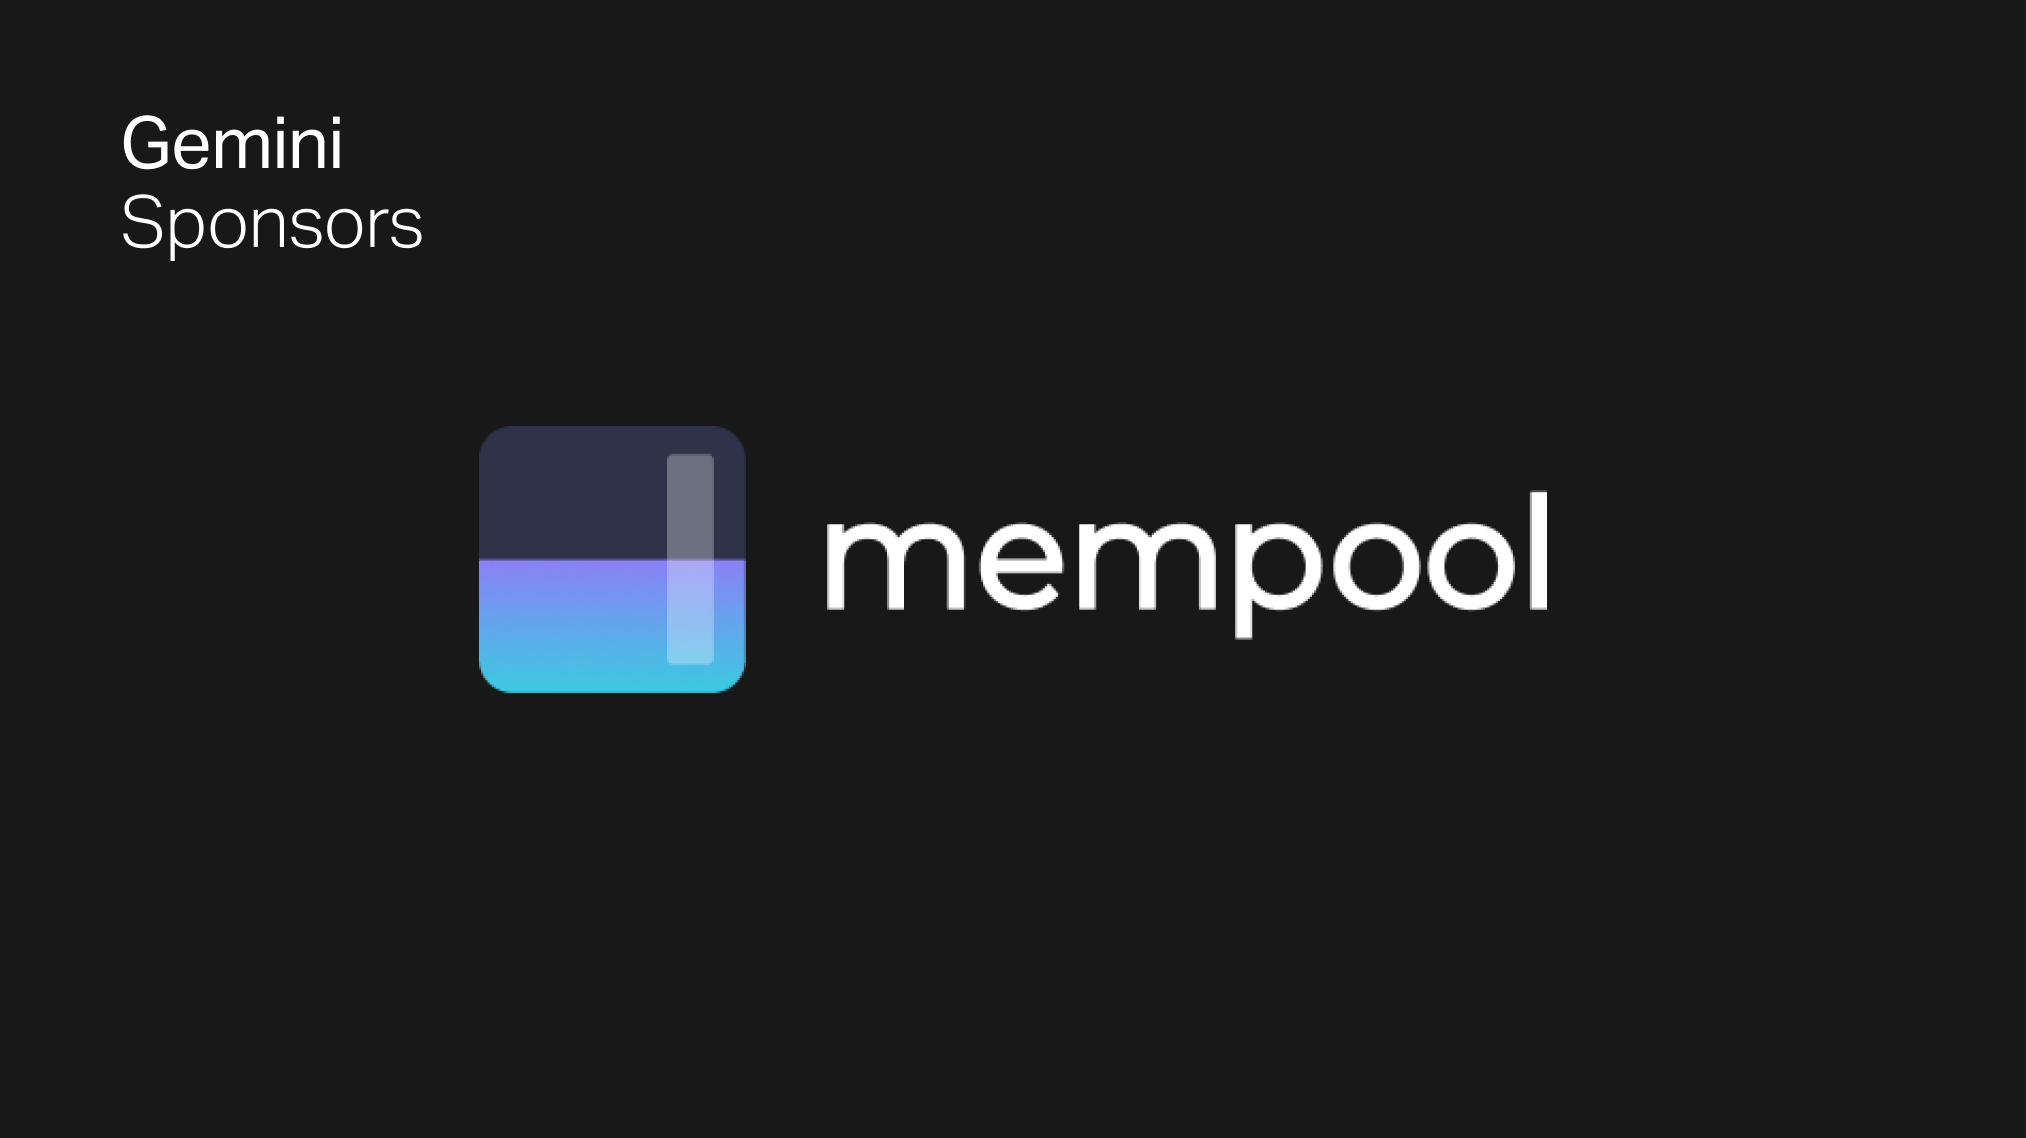 Gemini Supports Bitcoin Ecosystem With $25K Mempool.space Sponsorship